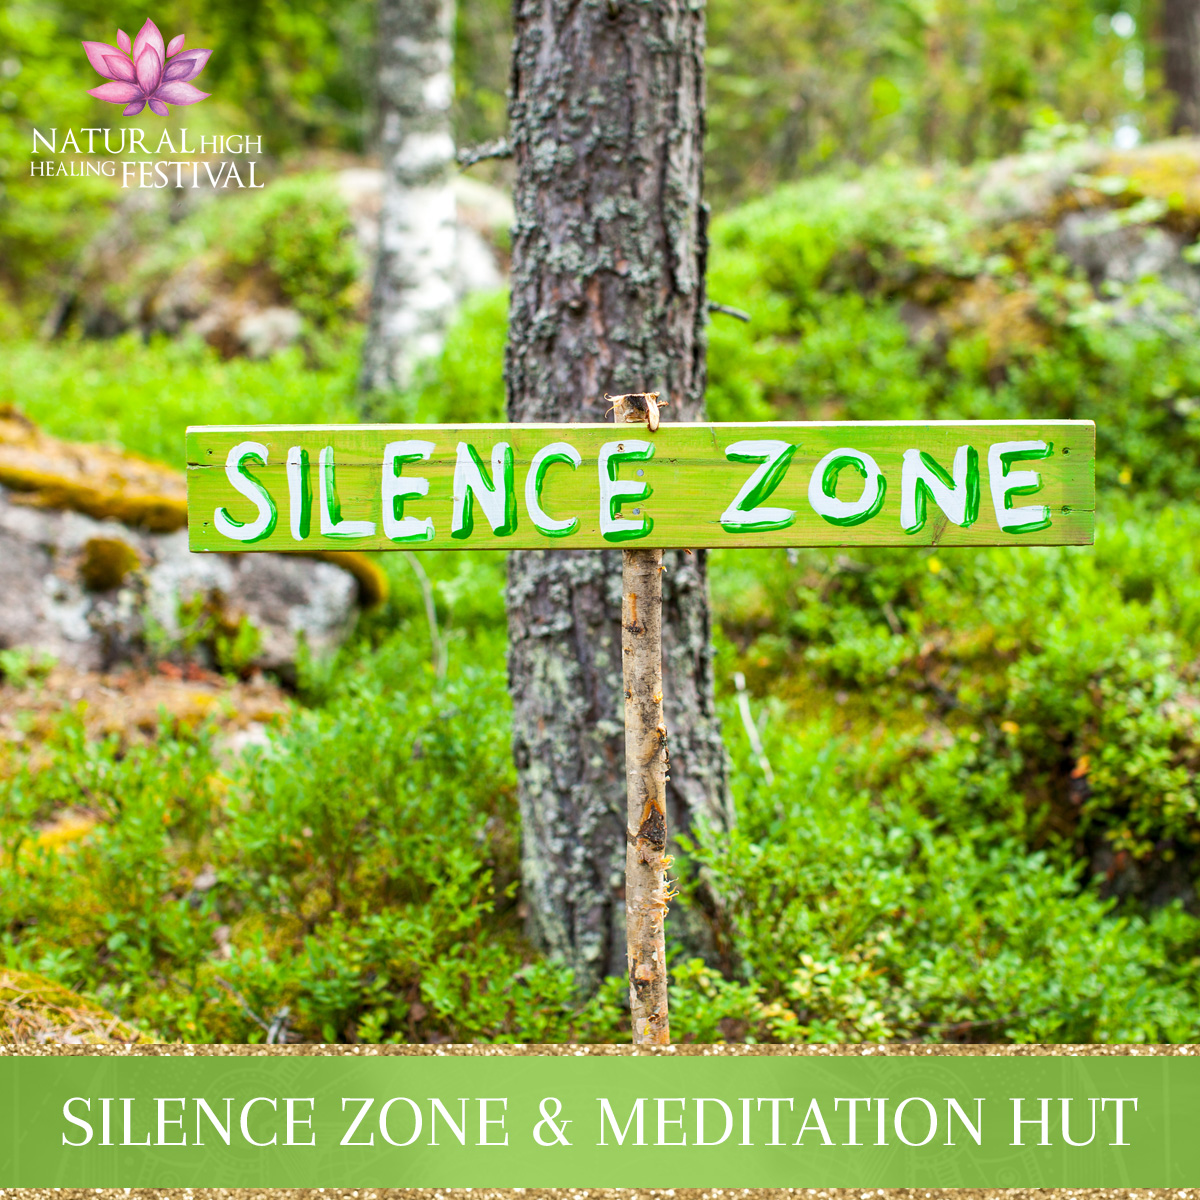 silence zone at natural high healing  festival